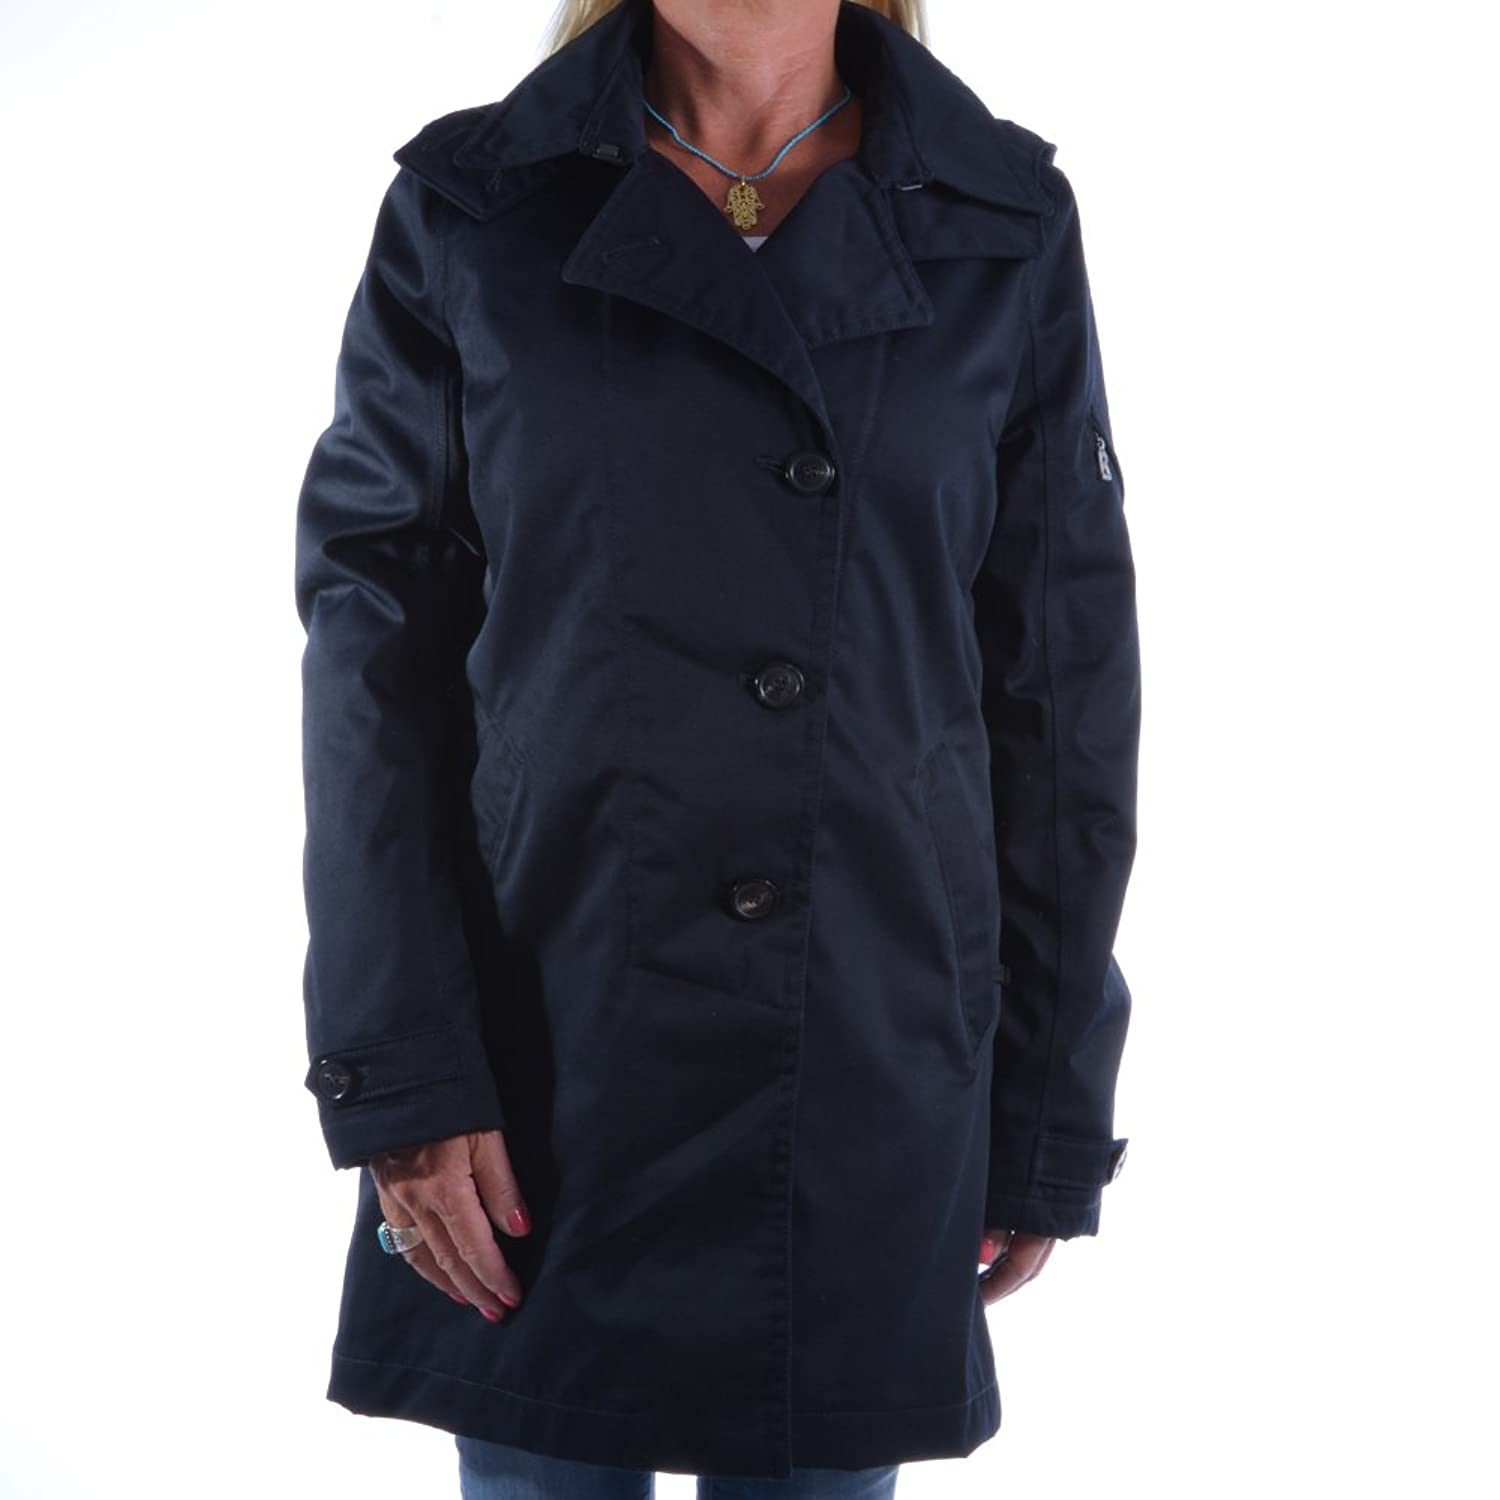 Bogner Fire + Ice Damenjacke Christin Gr. 38 699 3480 Midnight 449 Damen Jacke Jacken günstig kaufen